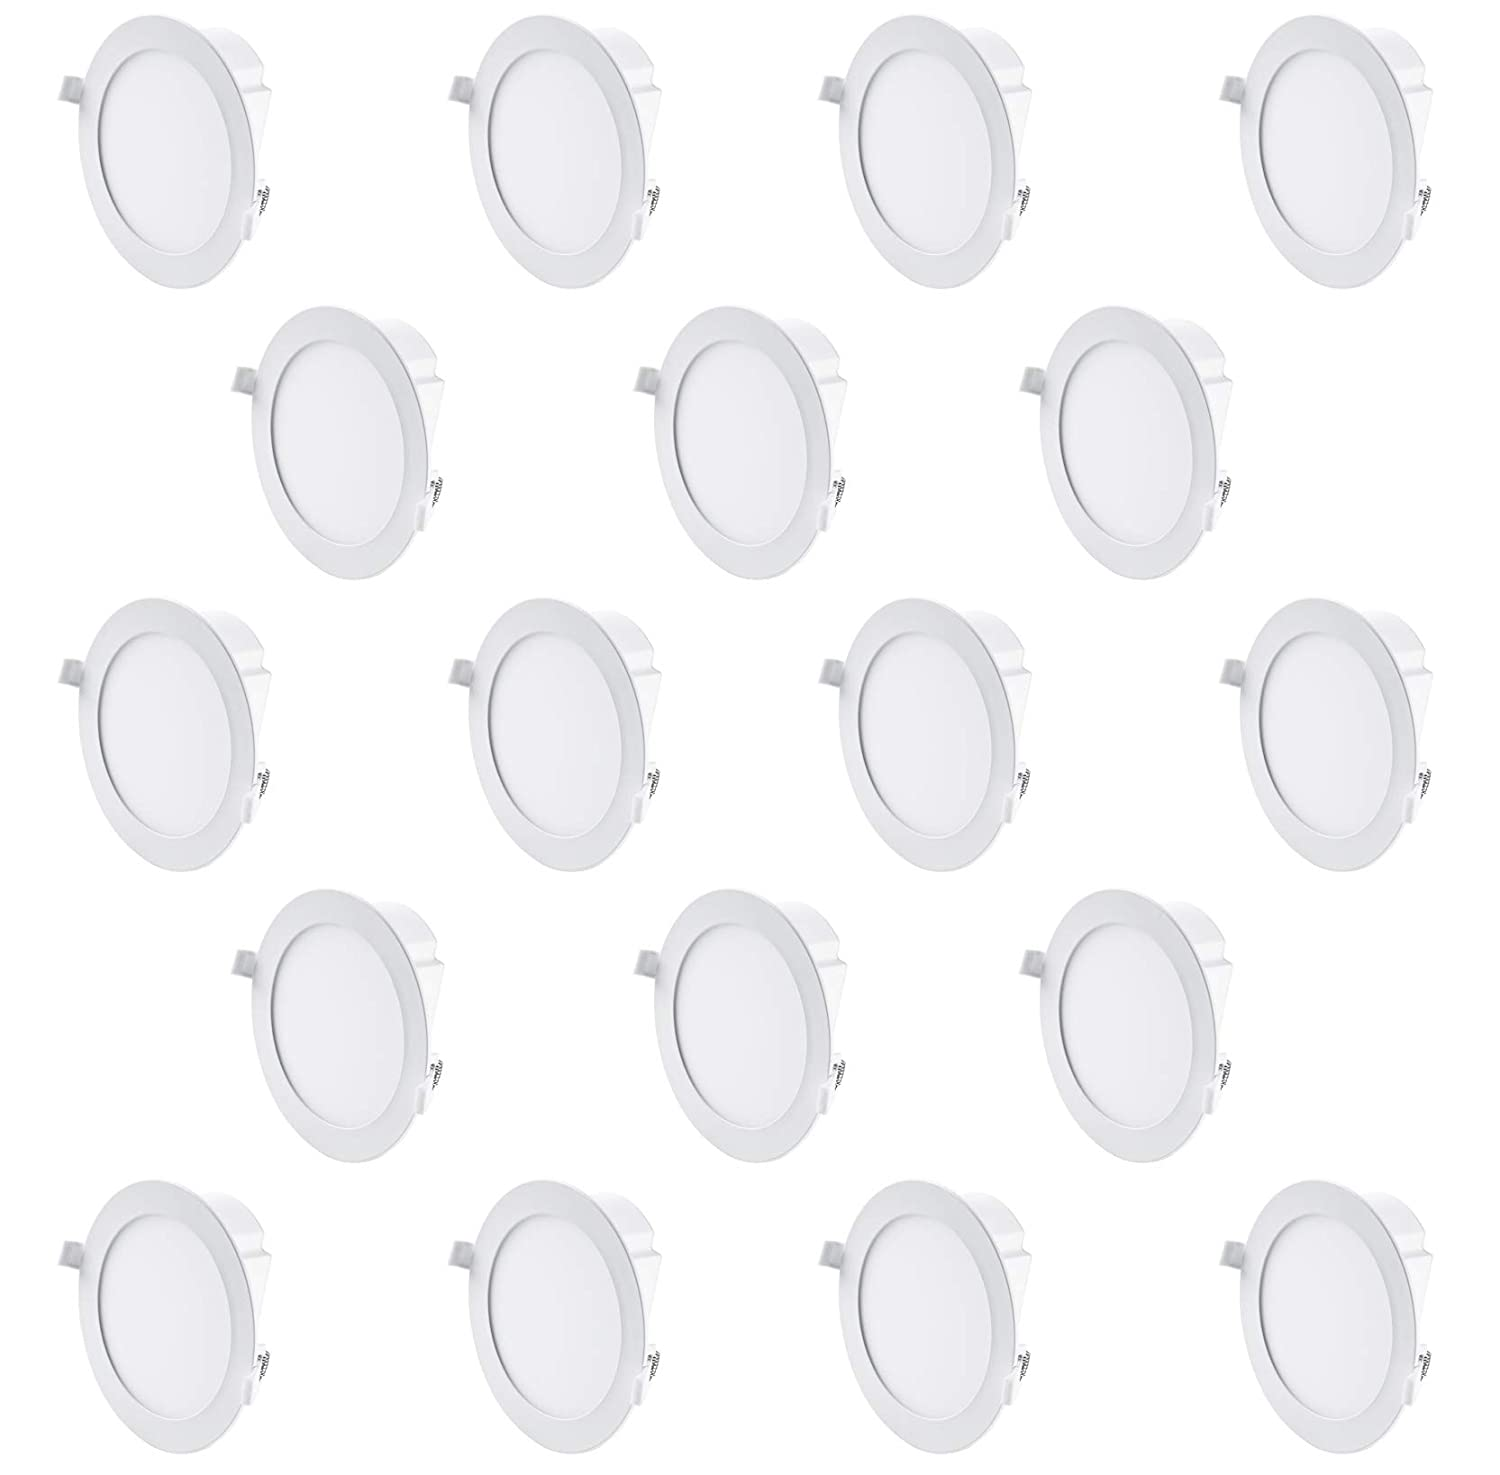 """Hyperikon 6"""" Recessed LED Downlight with Junction Box, Dimmable, 11.6W (65W Equiv.), Slim Retrofit Airtight Downlight, 5000K (Crystal White Glow), Energy Star, UL - for Dry/Damp Locations (18 Pack)"""